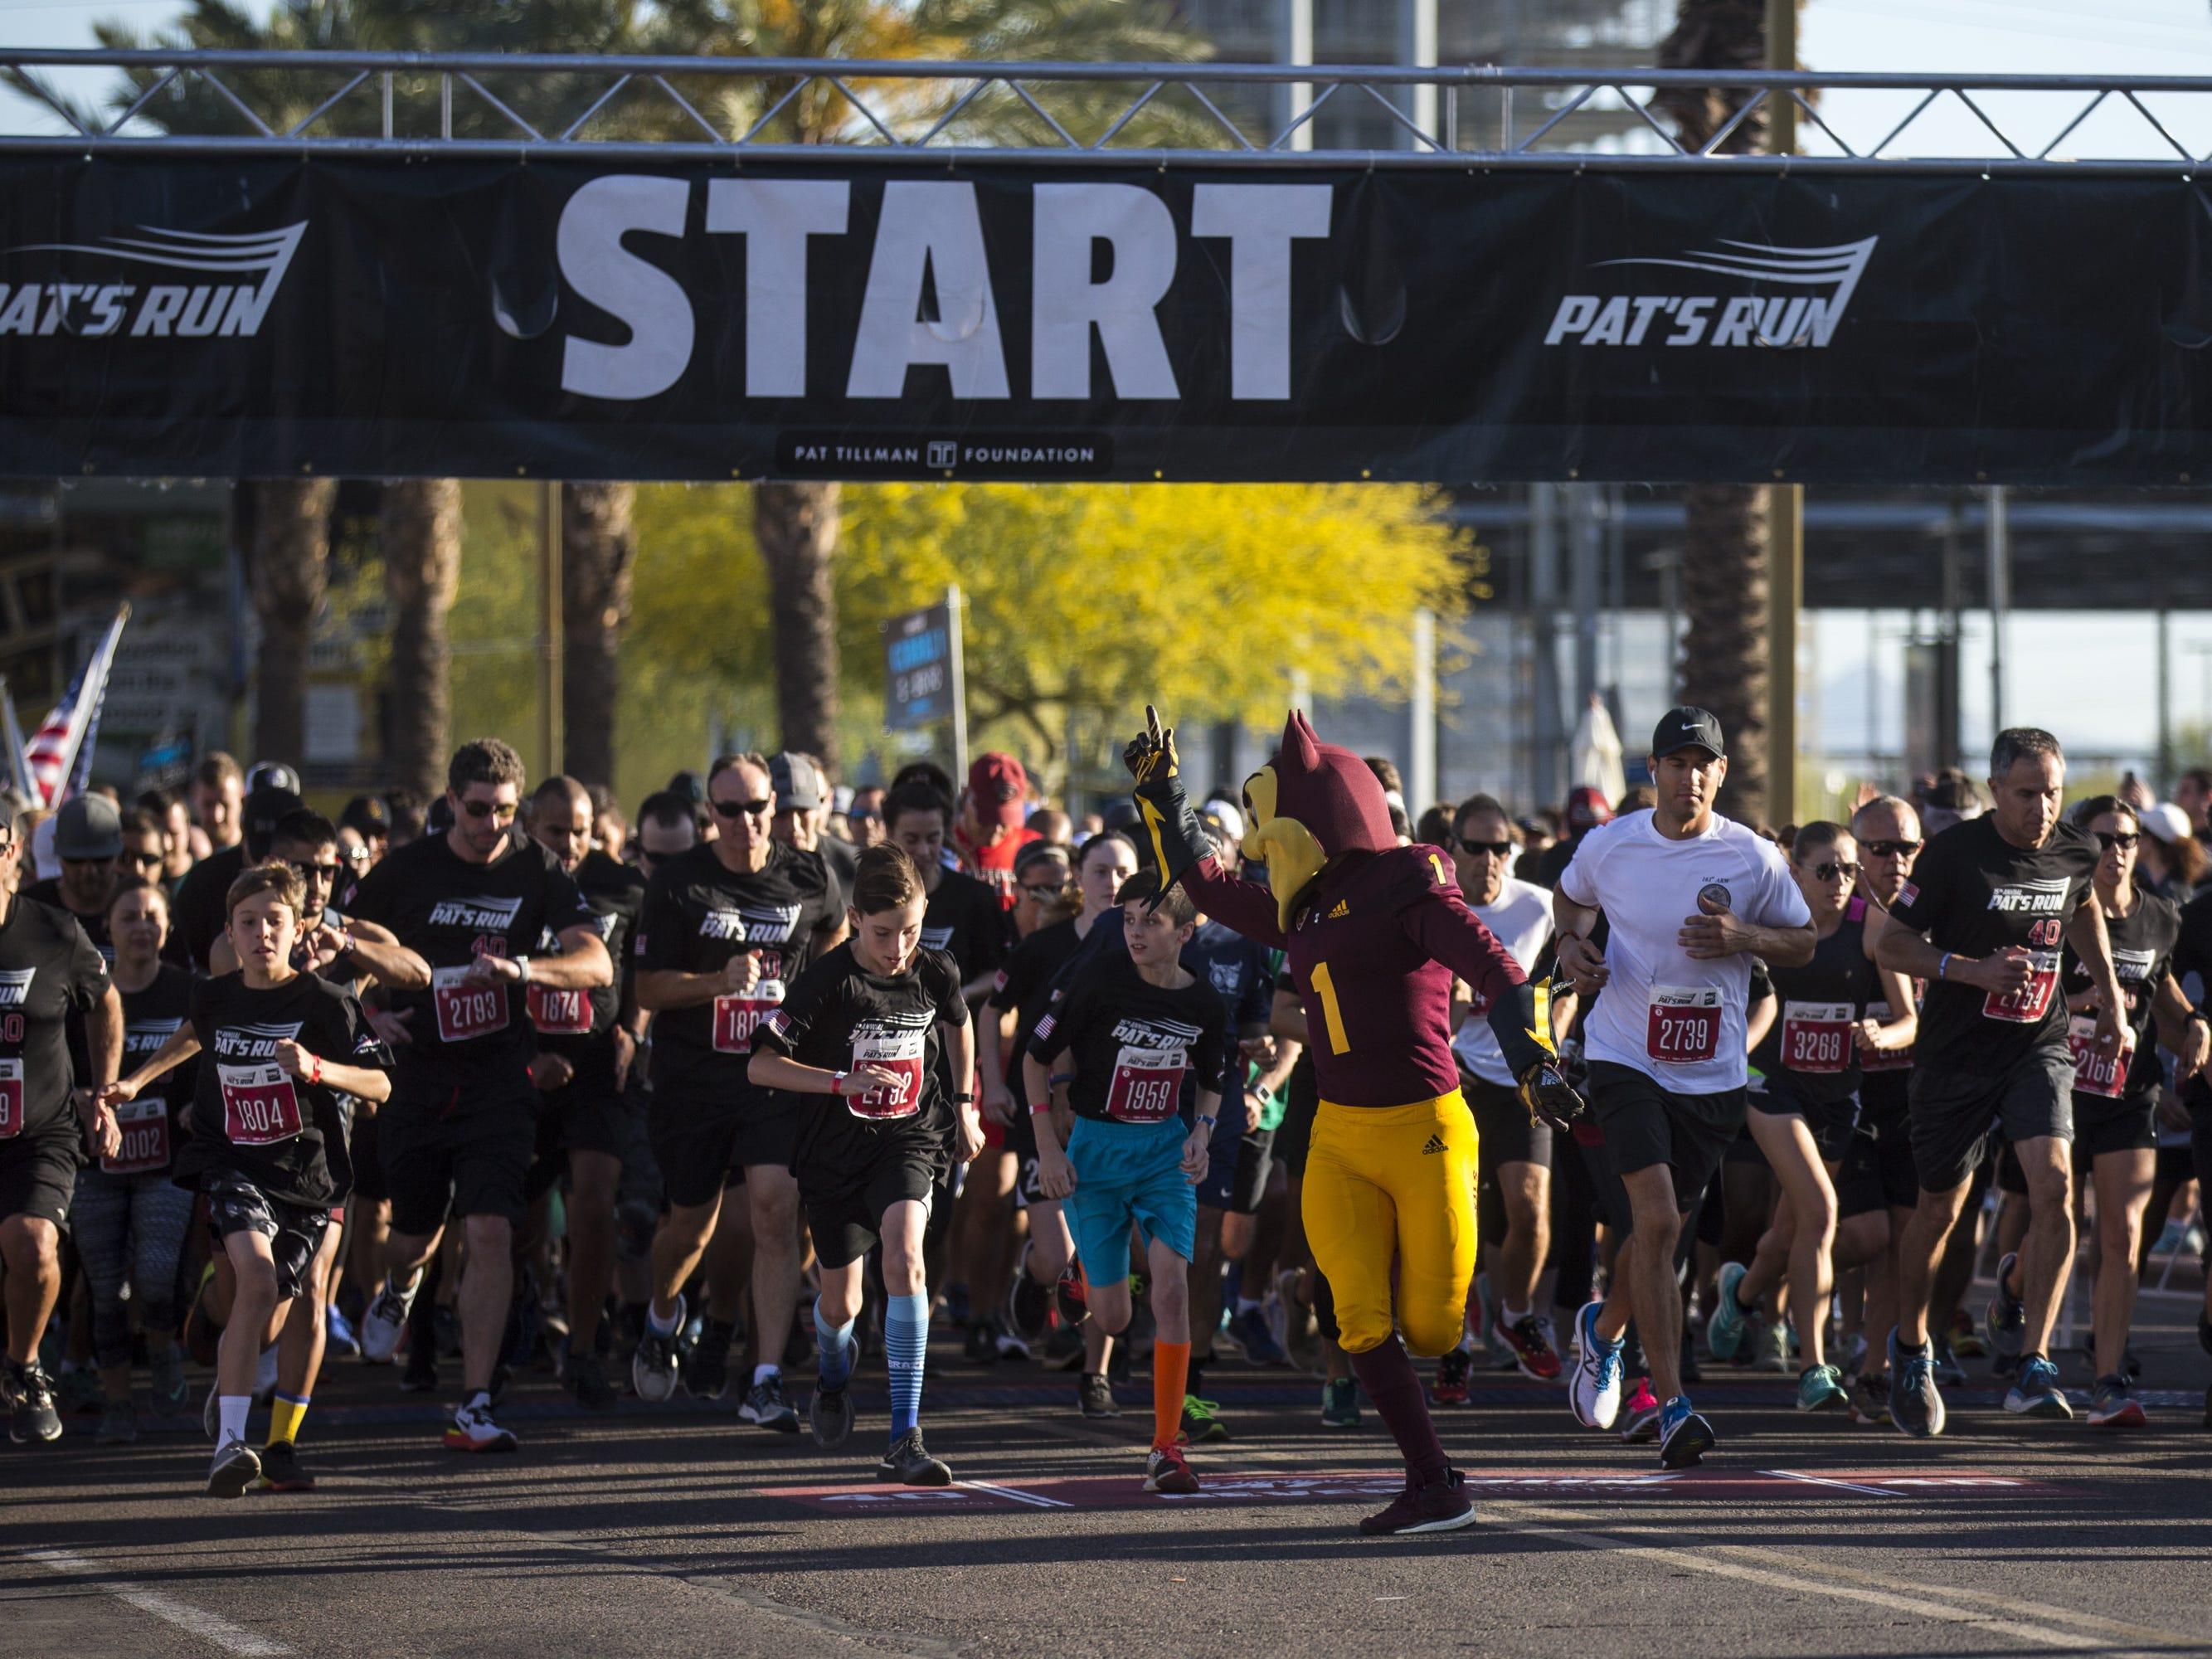 Participants run at the start line during the 15th Annual Pat's Run on Saturday, April 27, 2019, in Tempe, Ariz.